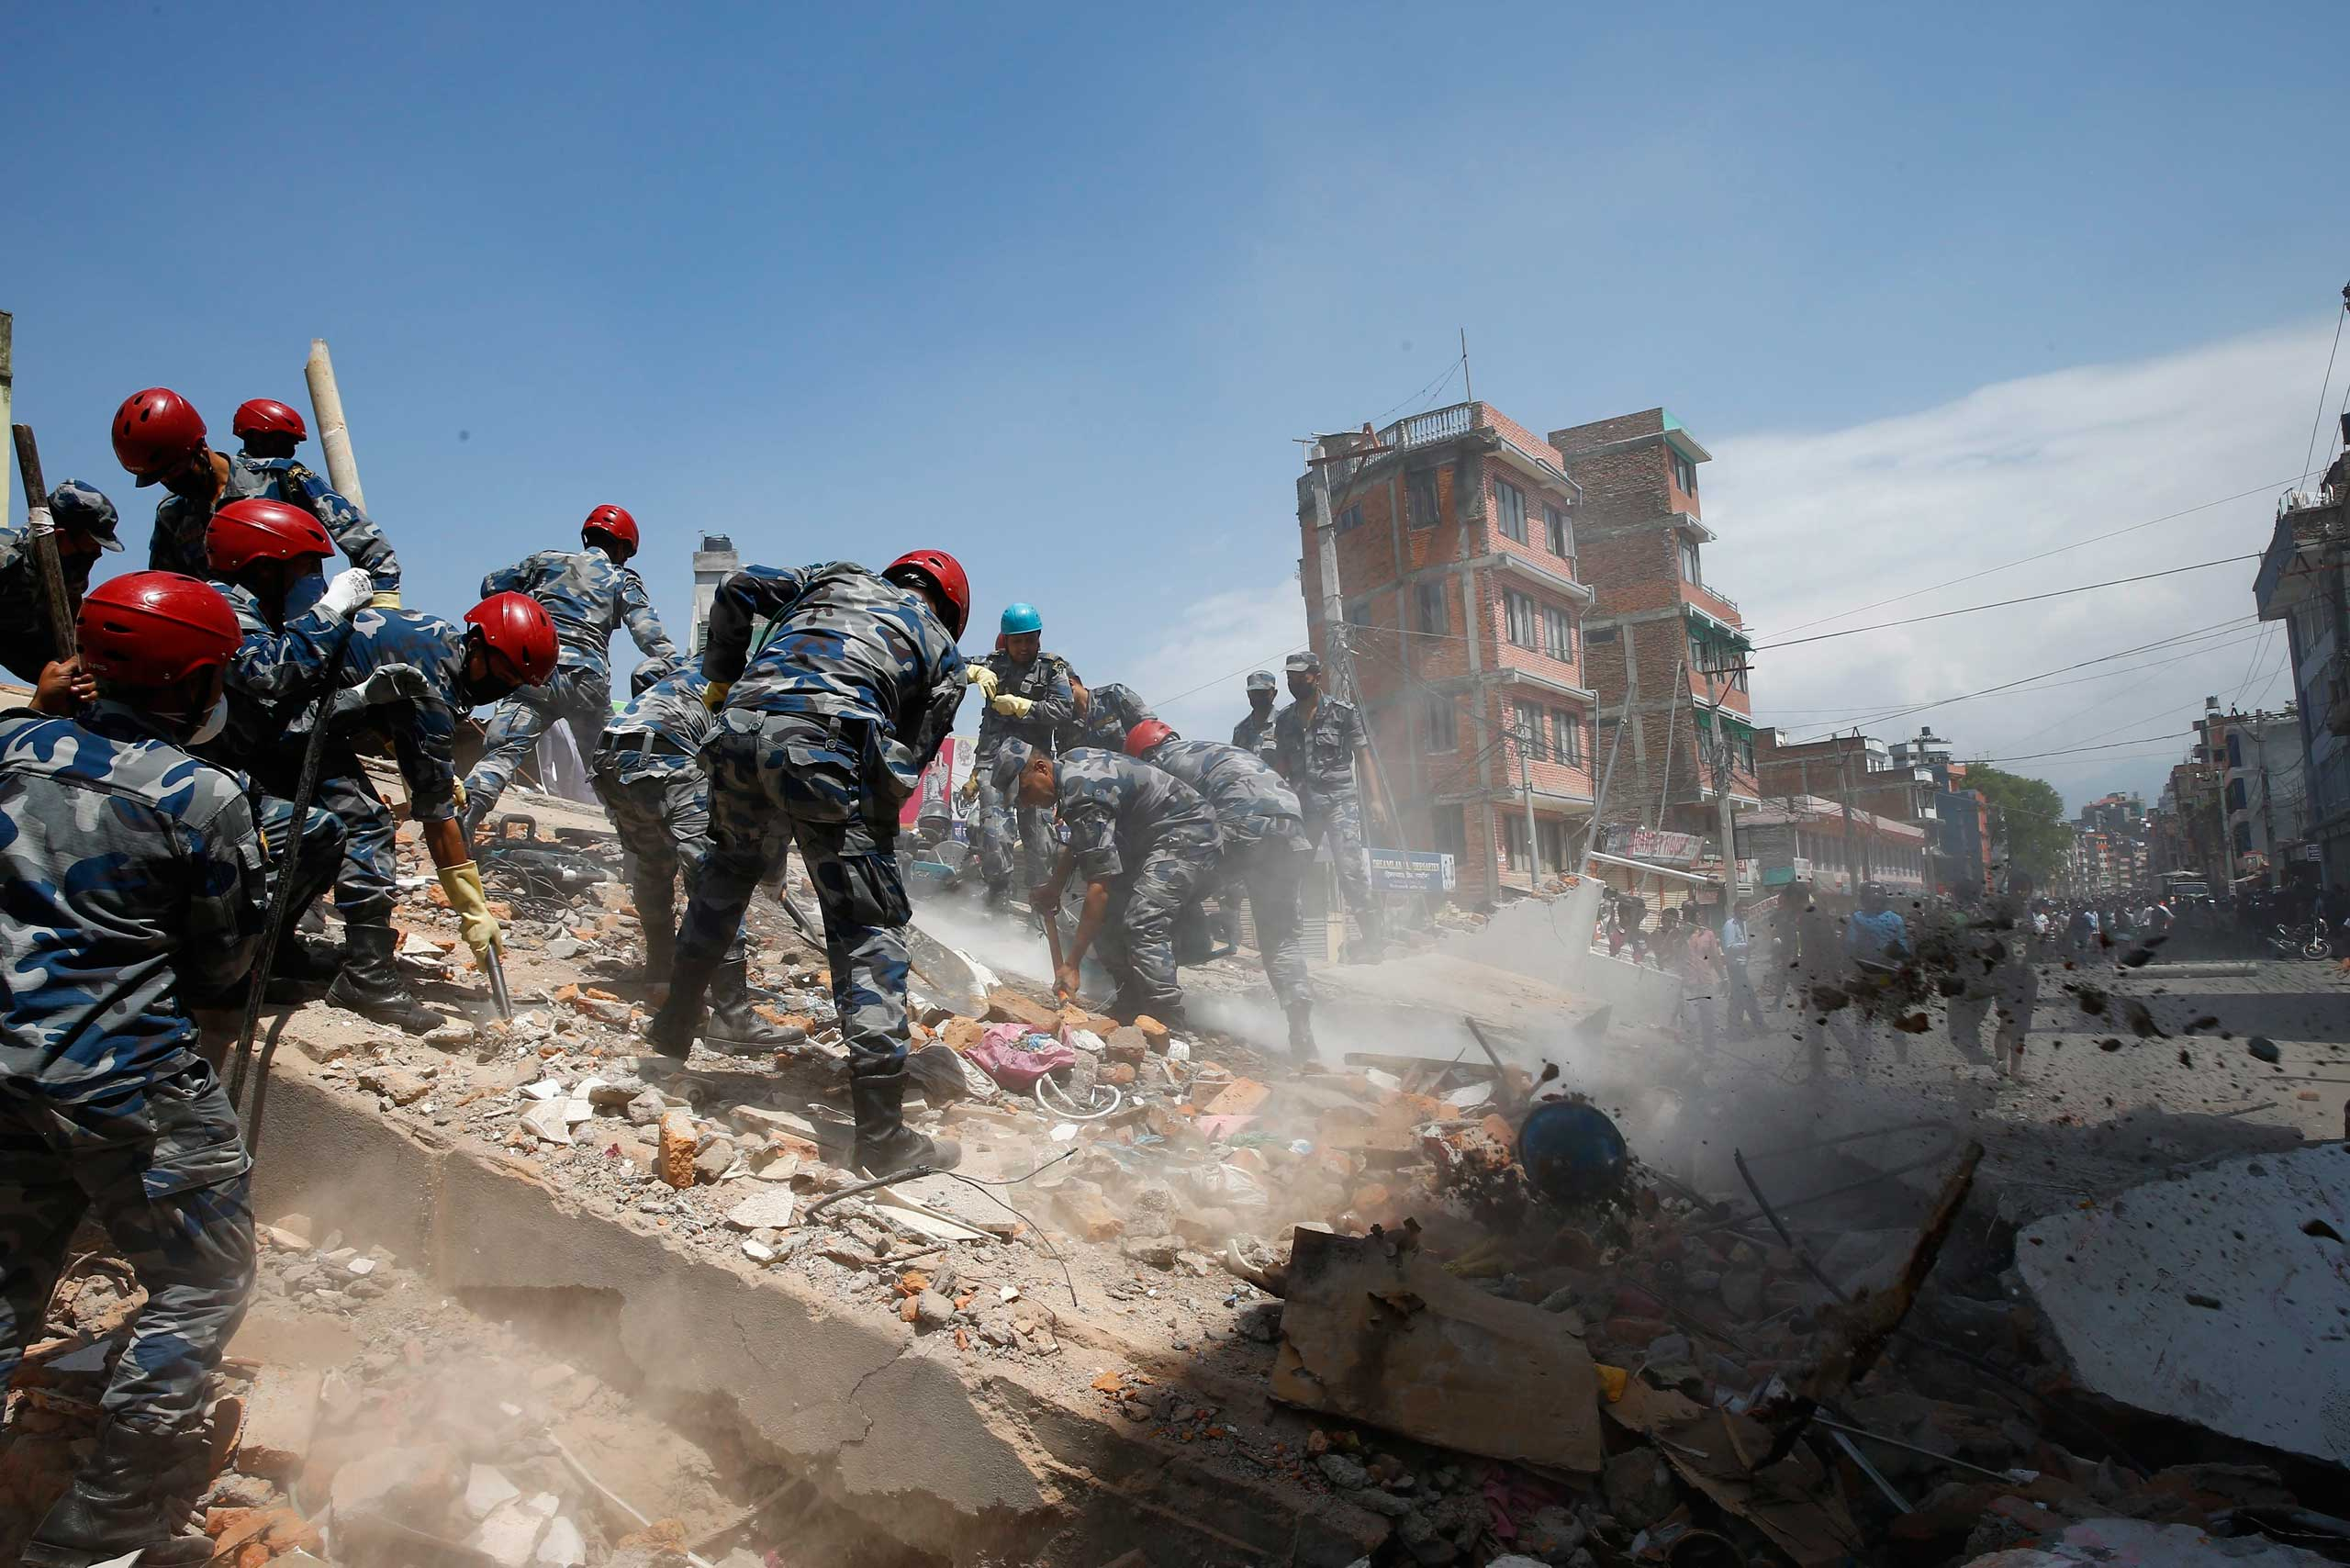 Nepalese armed police force search for victims after a house collapsed in strong earthquake hits Kathmandu on May 12 2015.